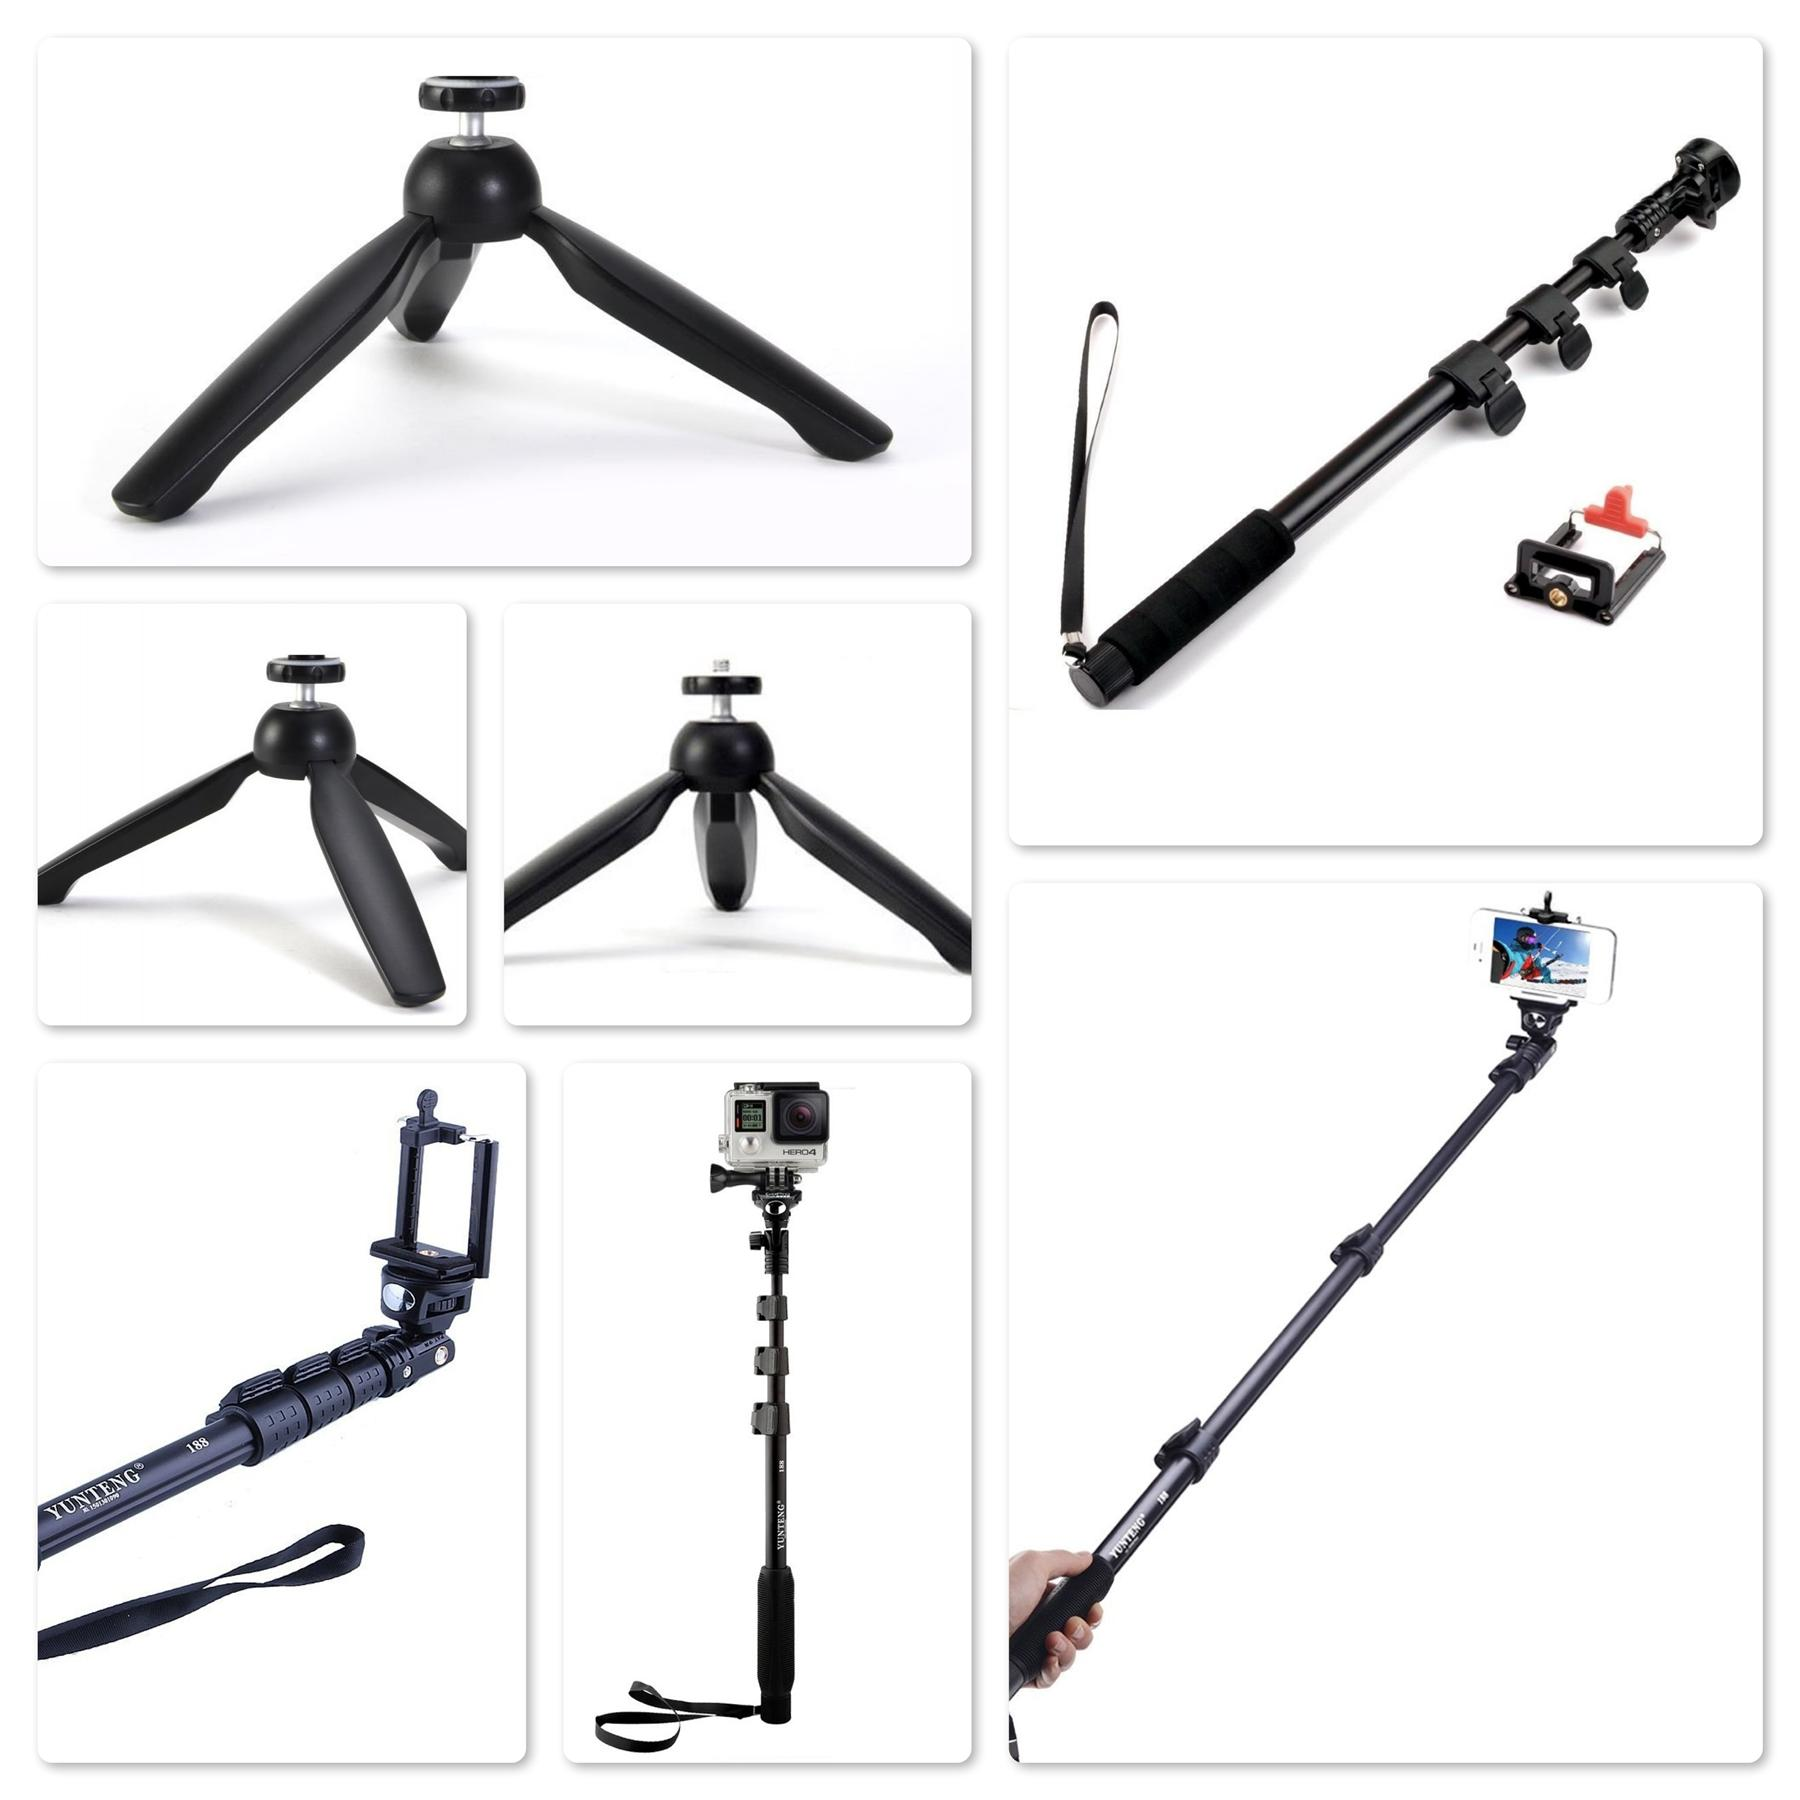 original yunteng yt 188 selfie stick end 2 14 2017 5 14 pm. Black Bedroom Furniture Sets. Home Design Ideas